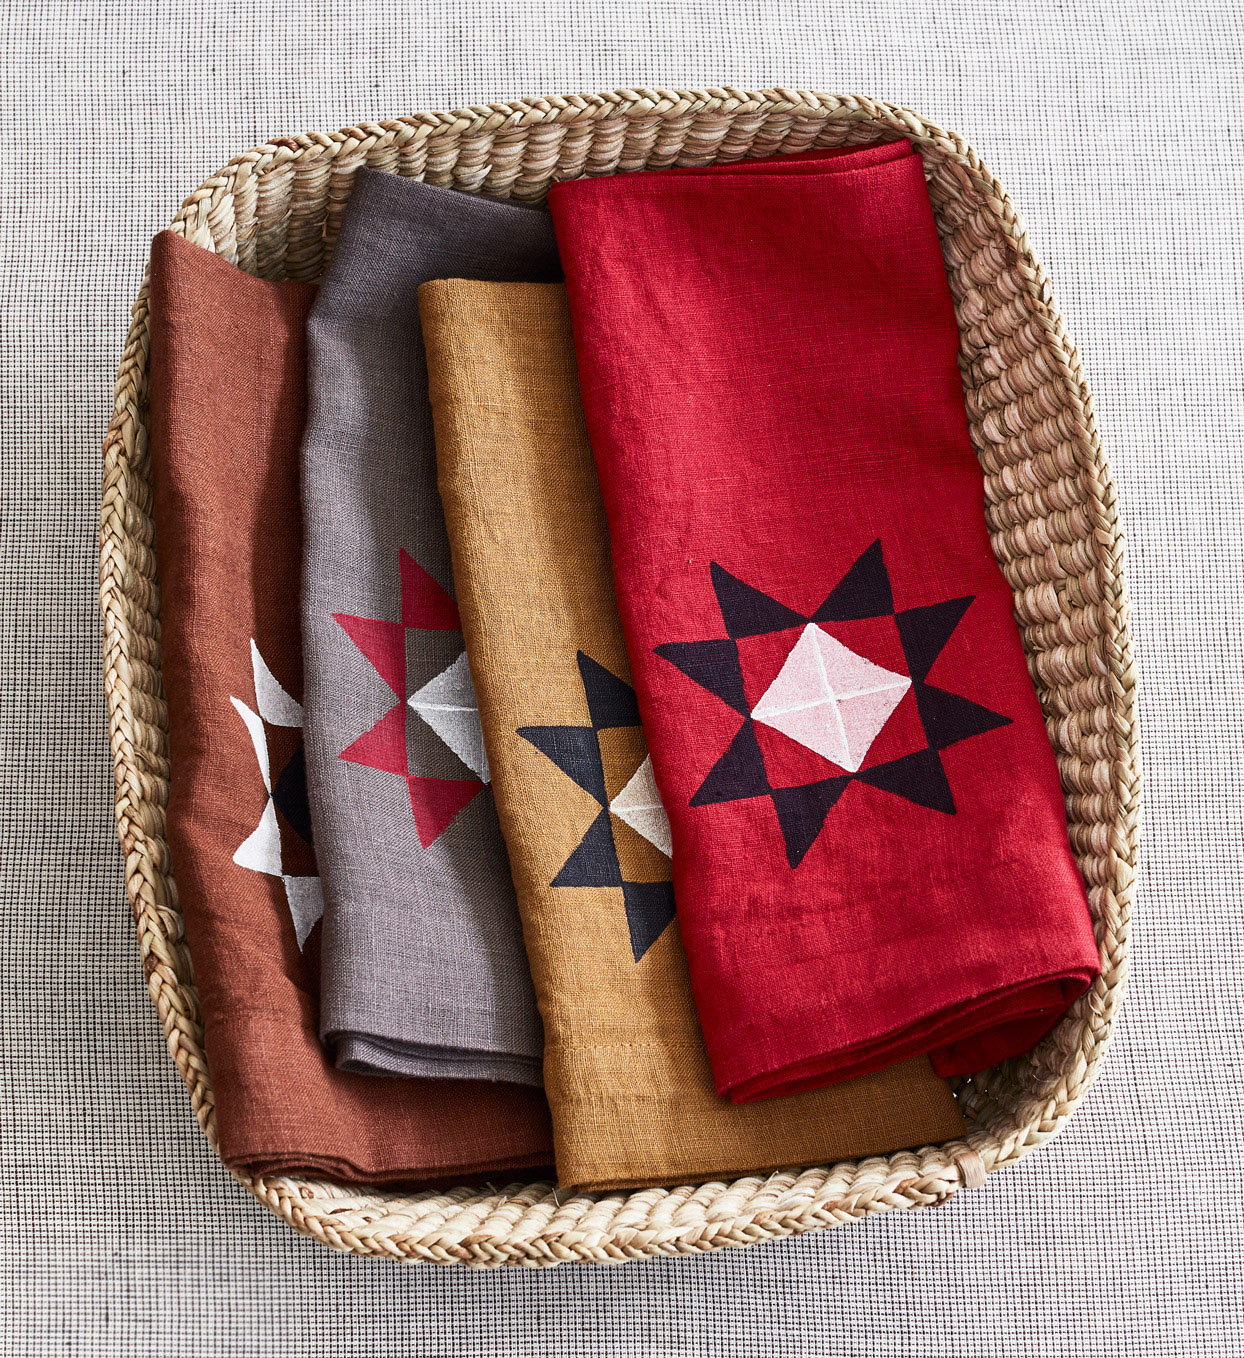 amish evening star napkins